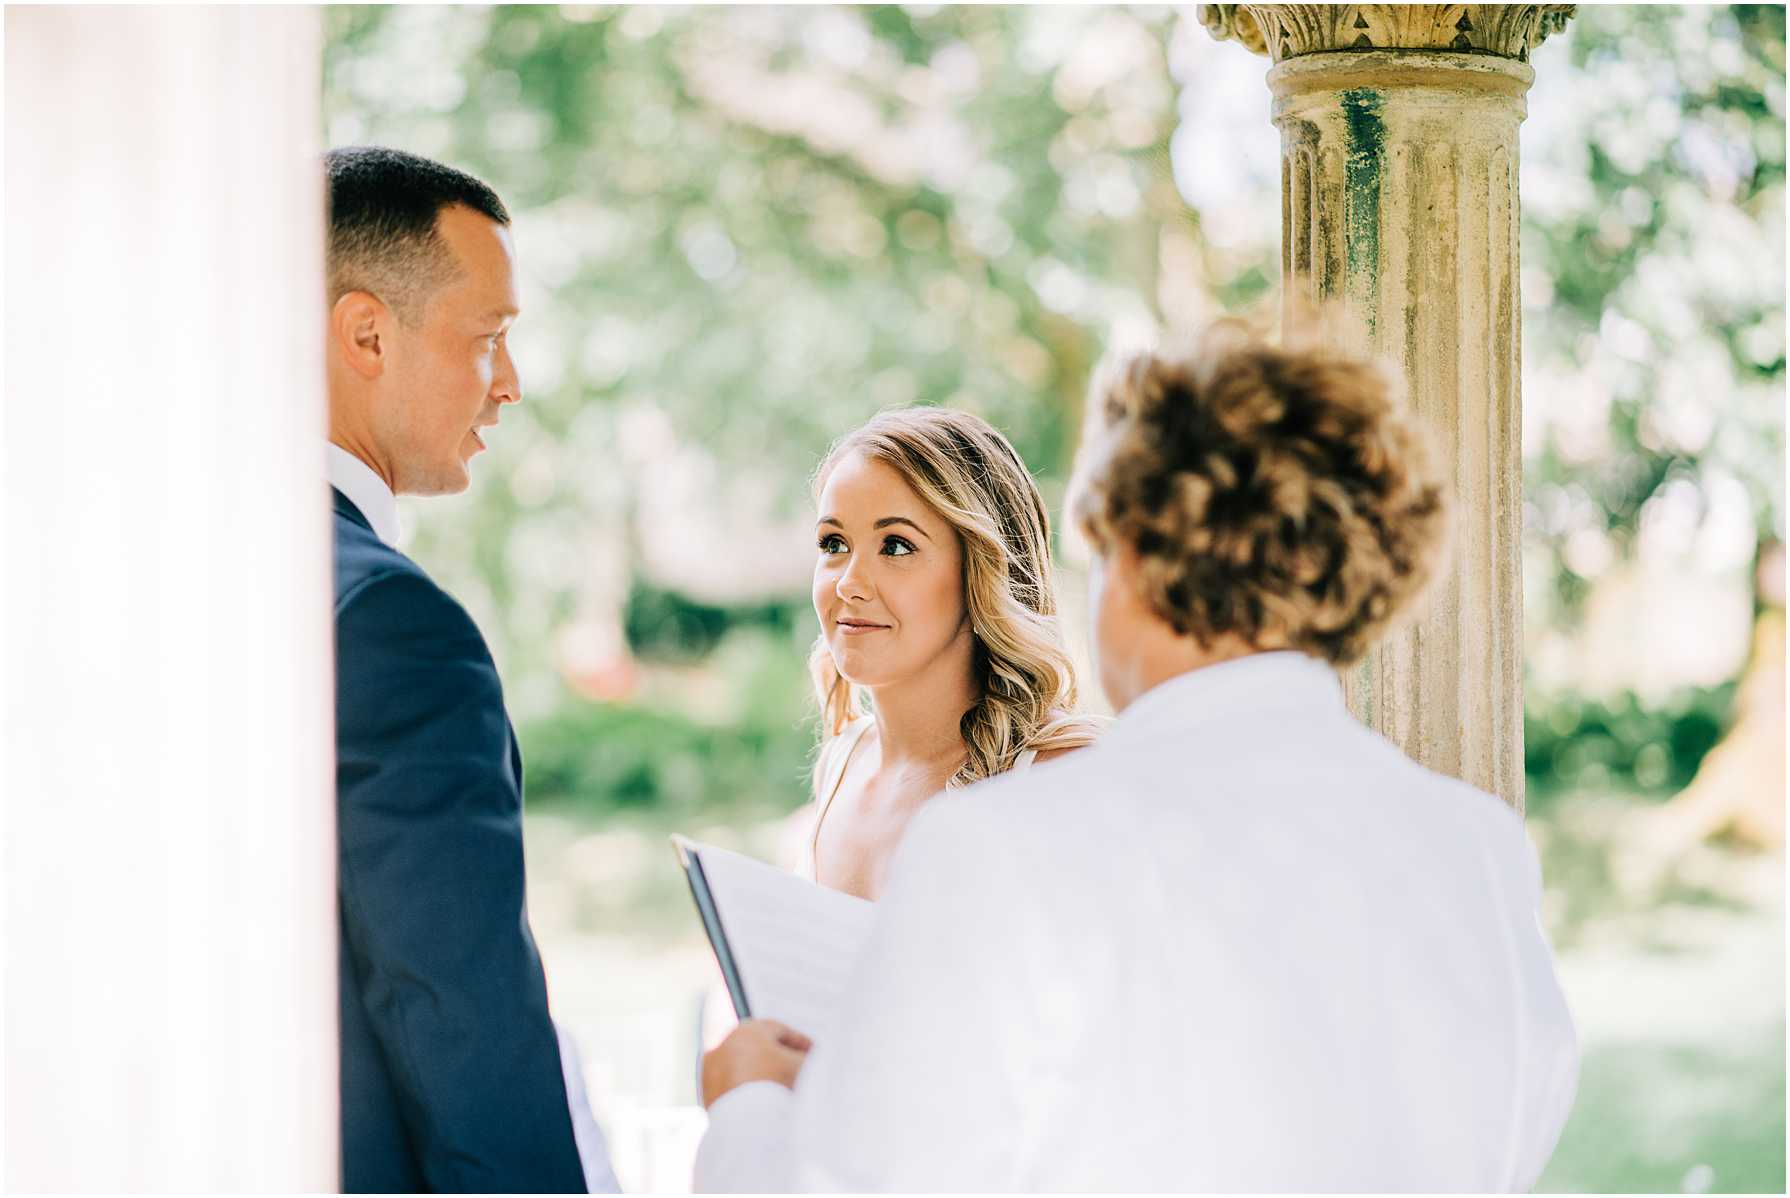 bride looking at her groom during the wedding vows